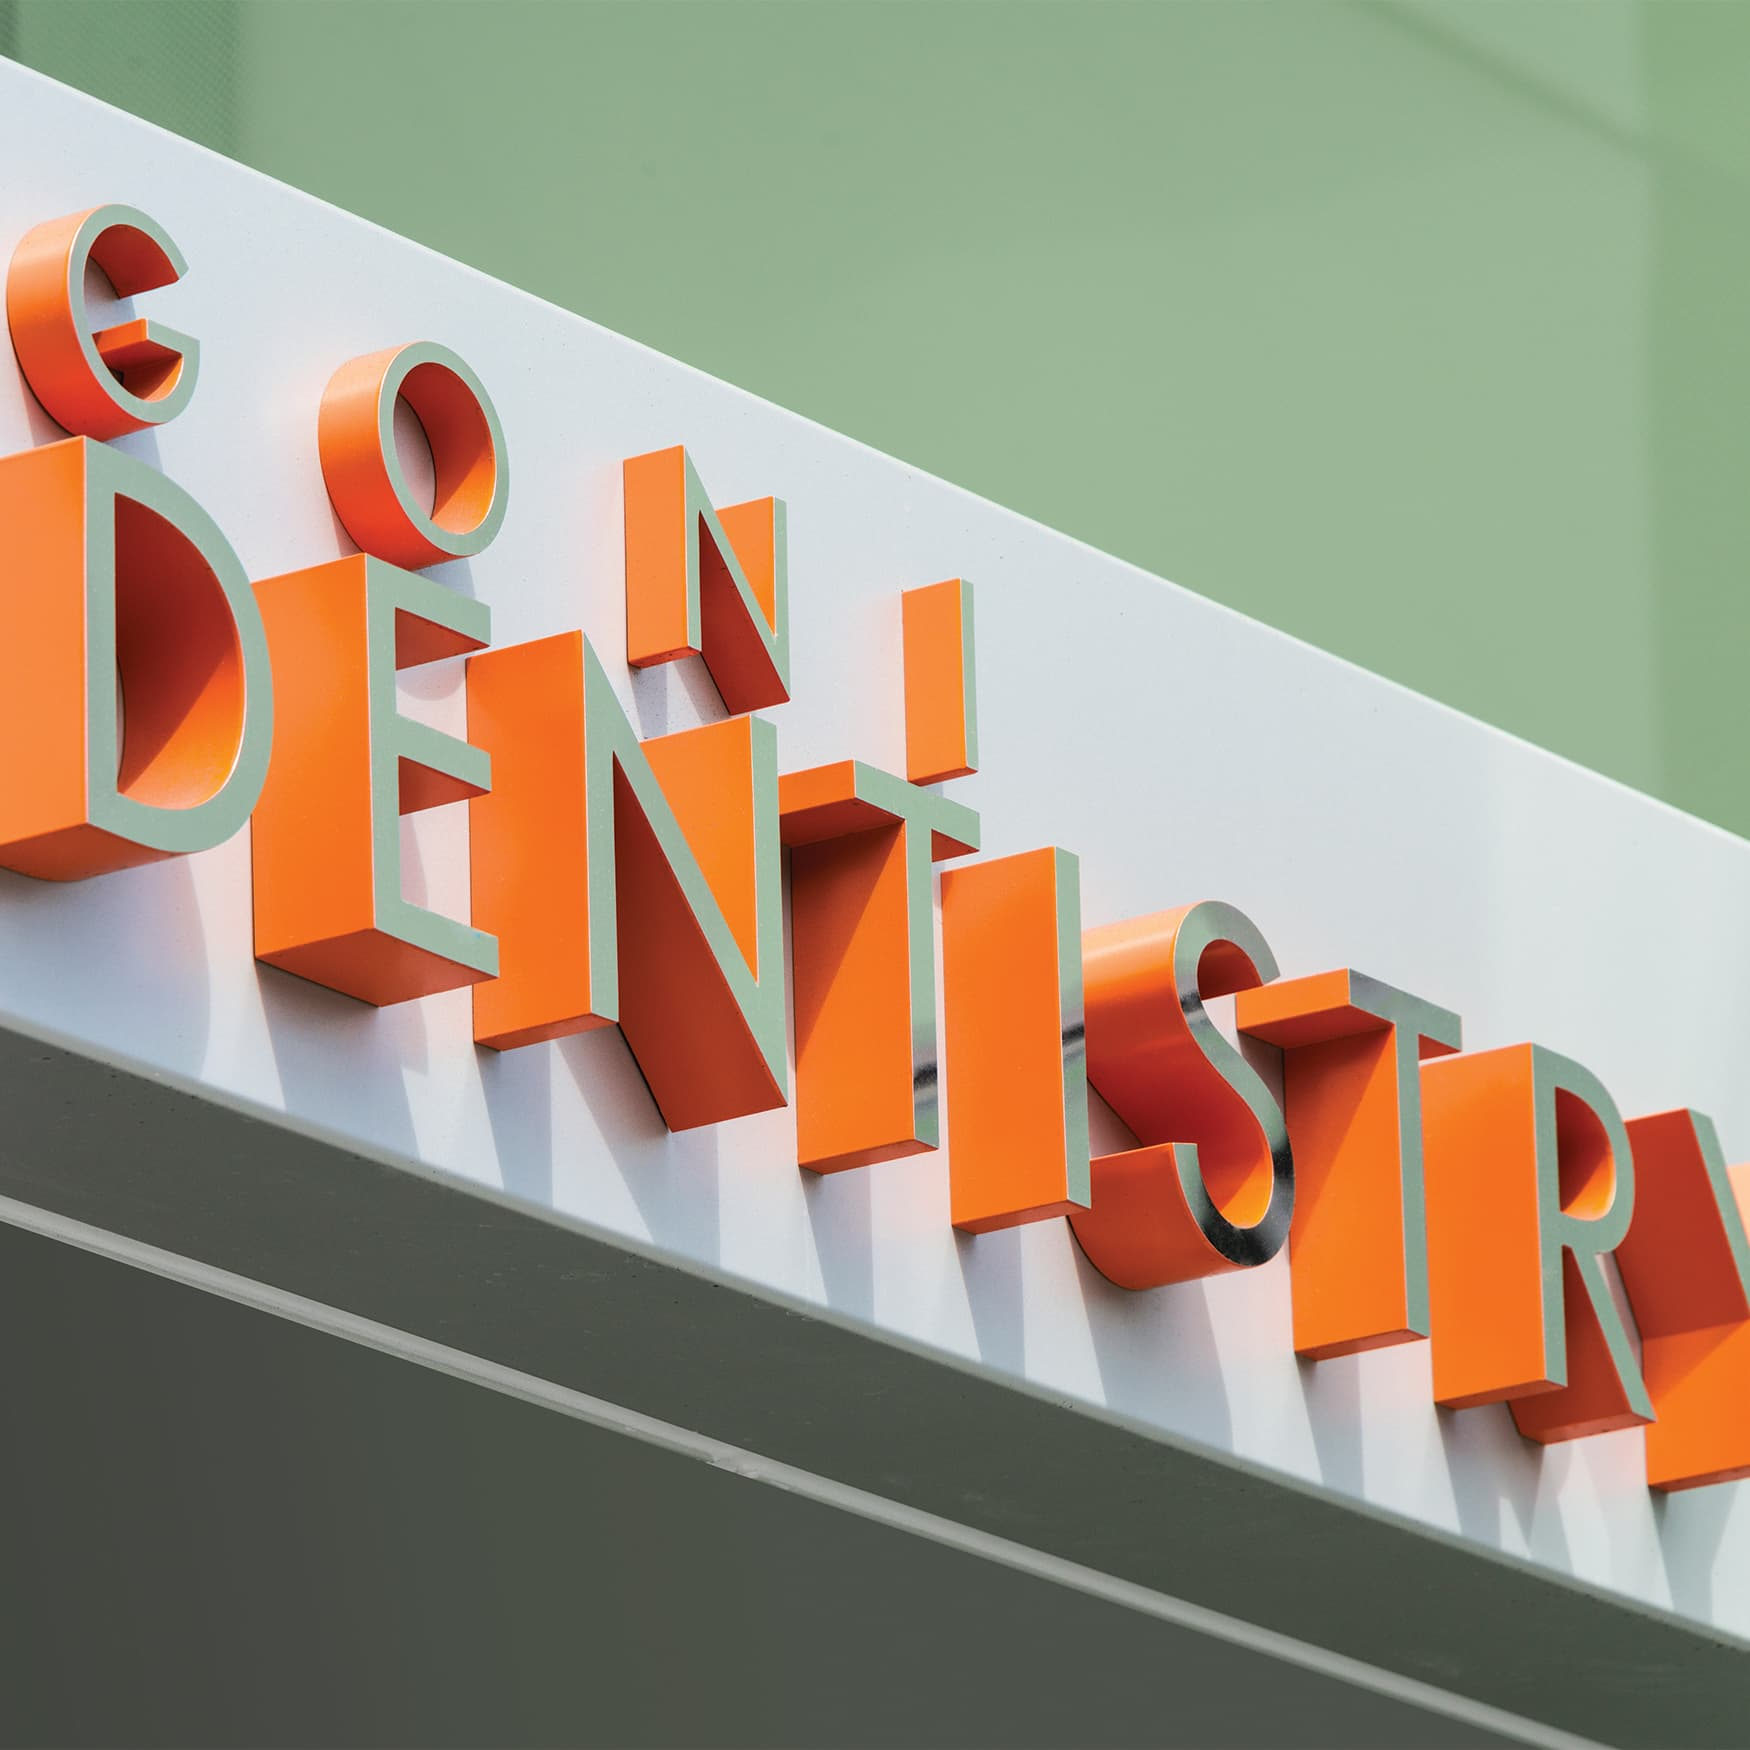 University of the Pacific, Education Design and Healthcare Design in San Francisco, California. Extruded letter signage with orange returns.